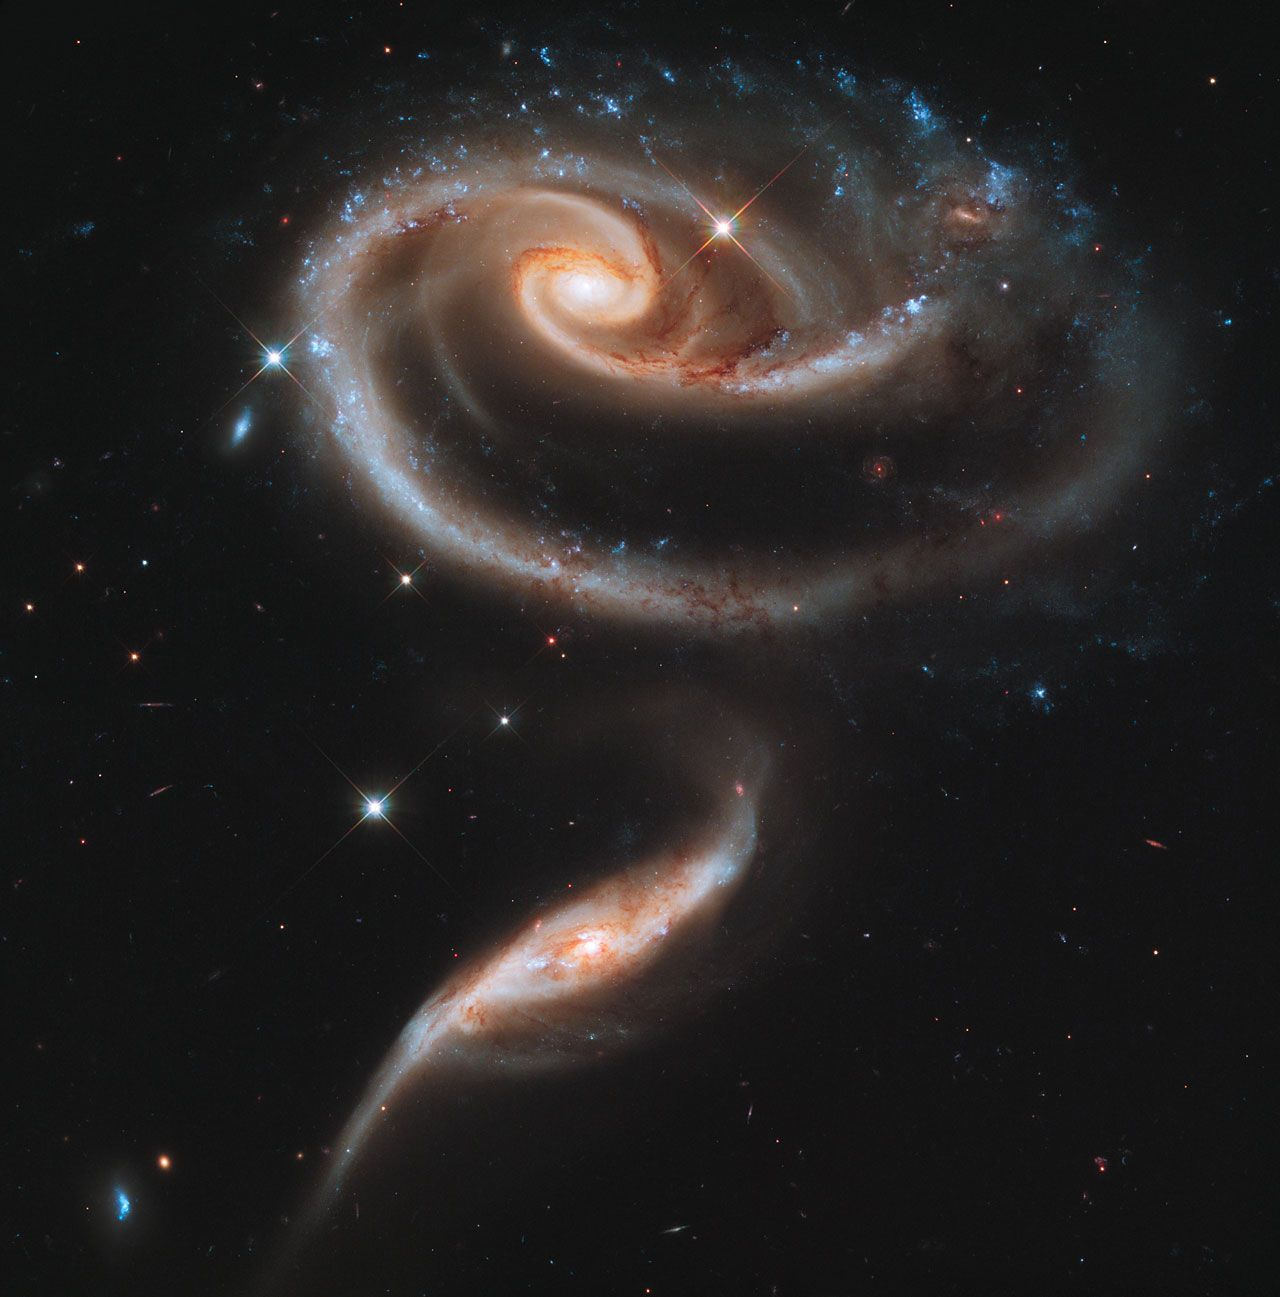 A Rose Made Of Galaxies Actual Hubble Space Telescope Image